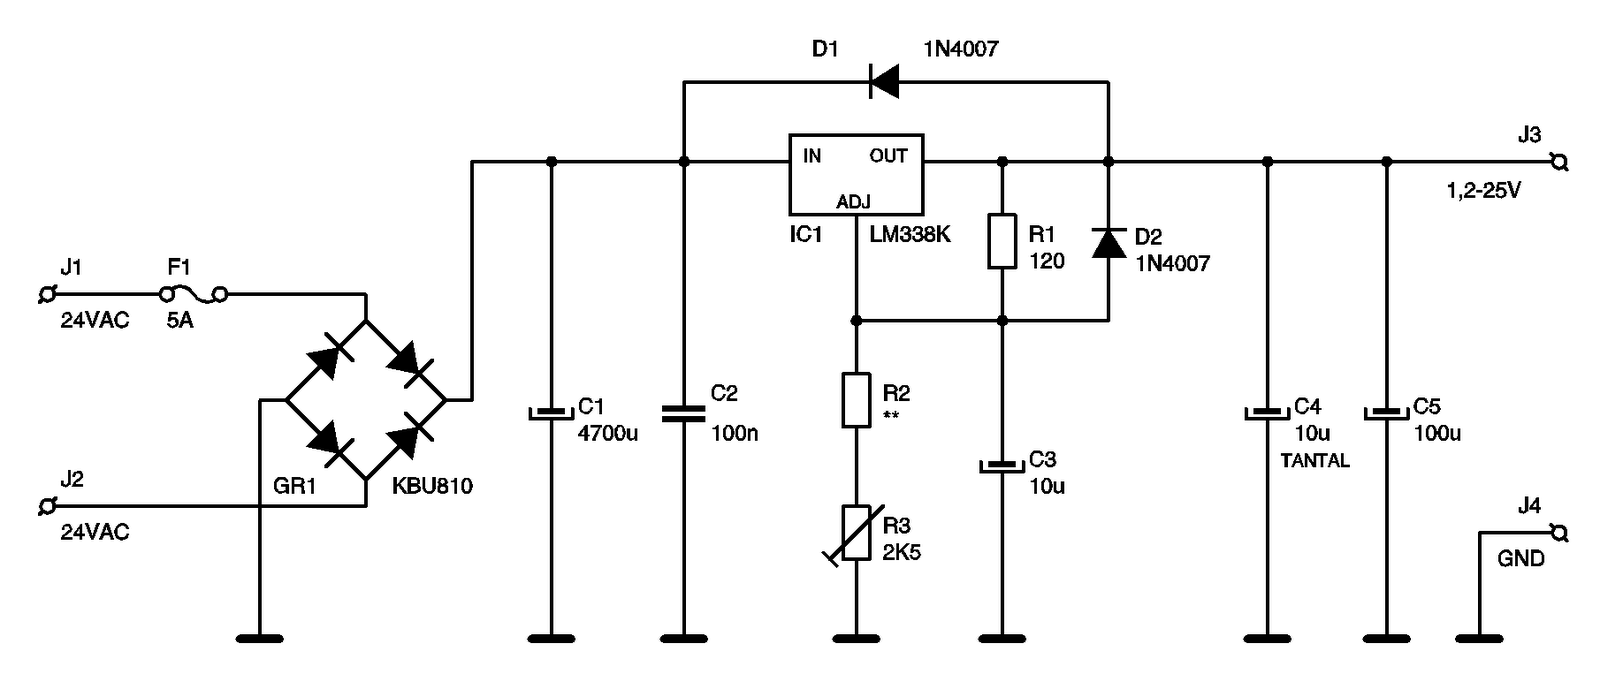 the core of the power supply circuit is lm338k  the scheme